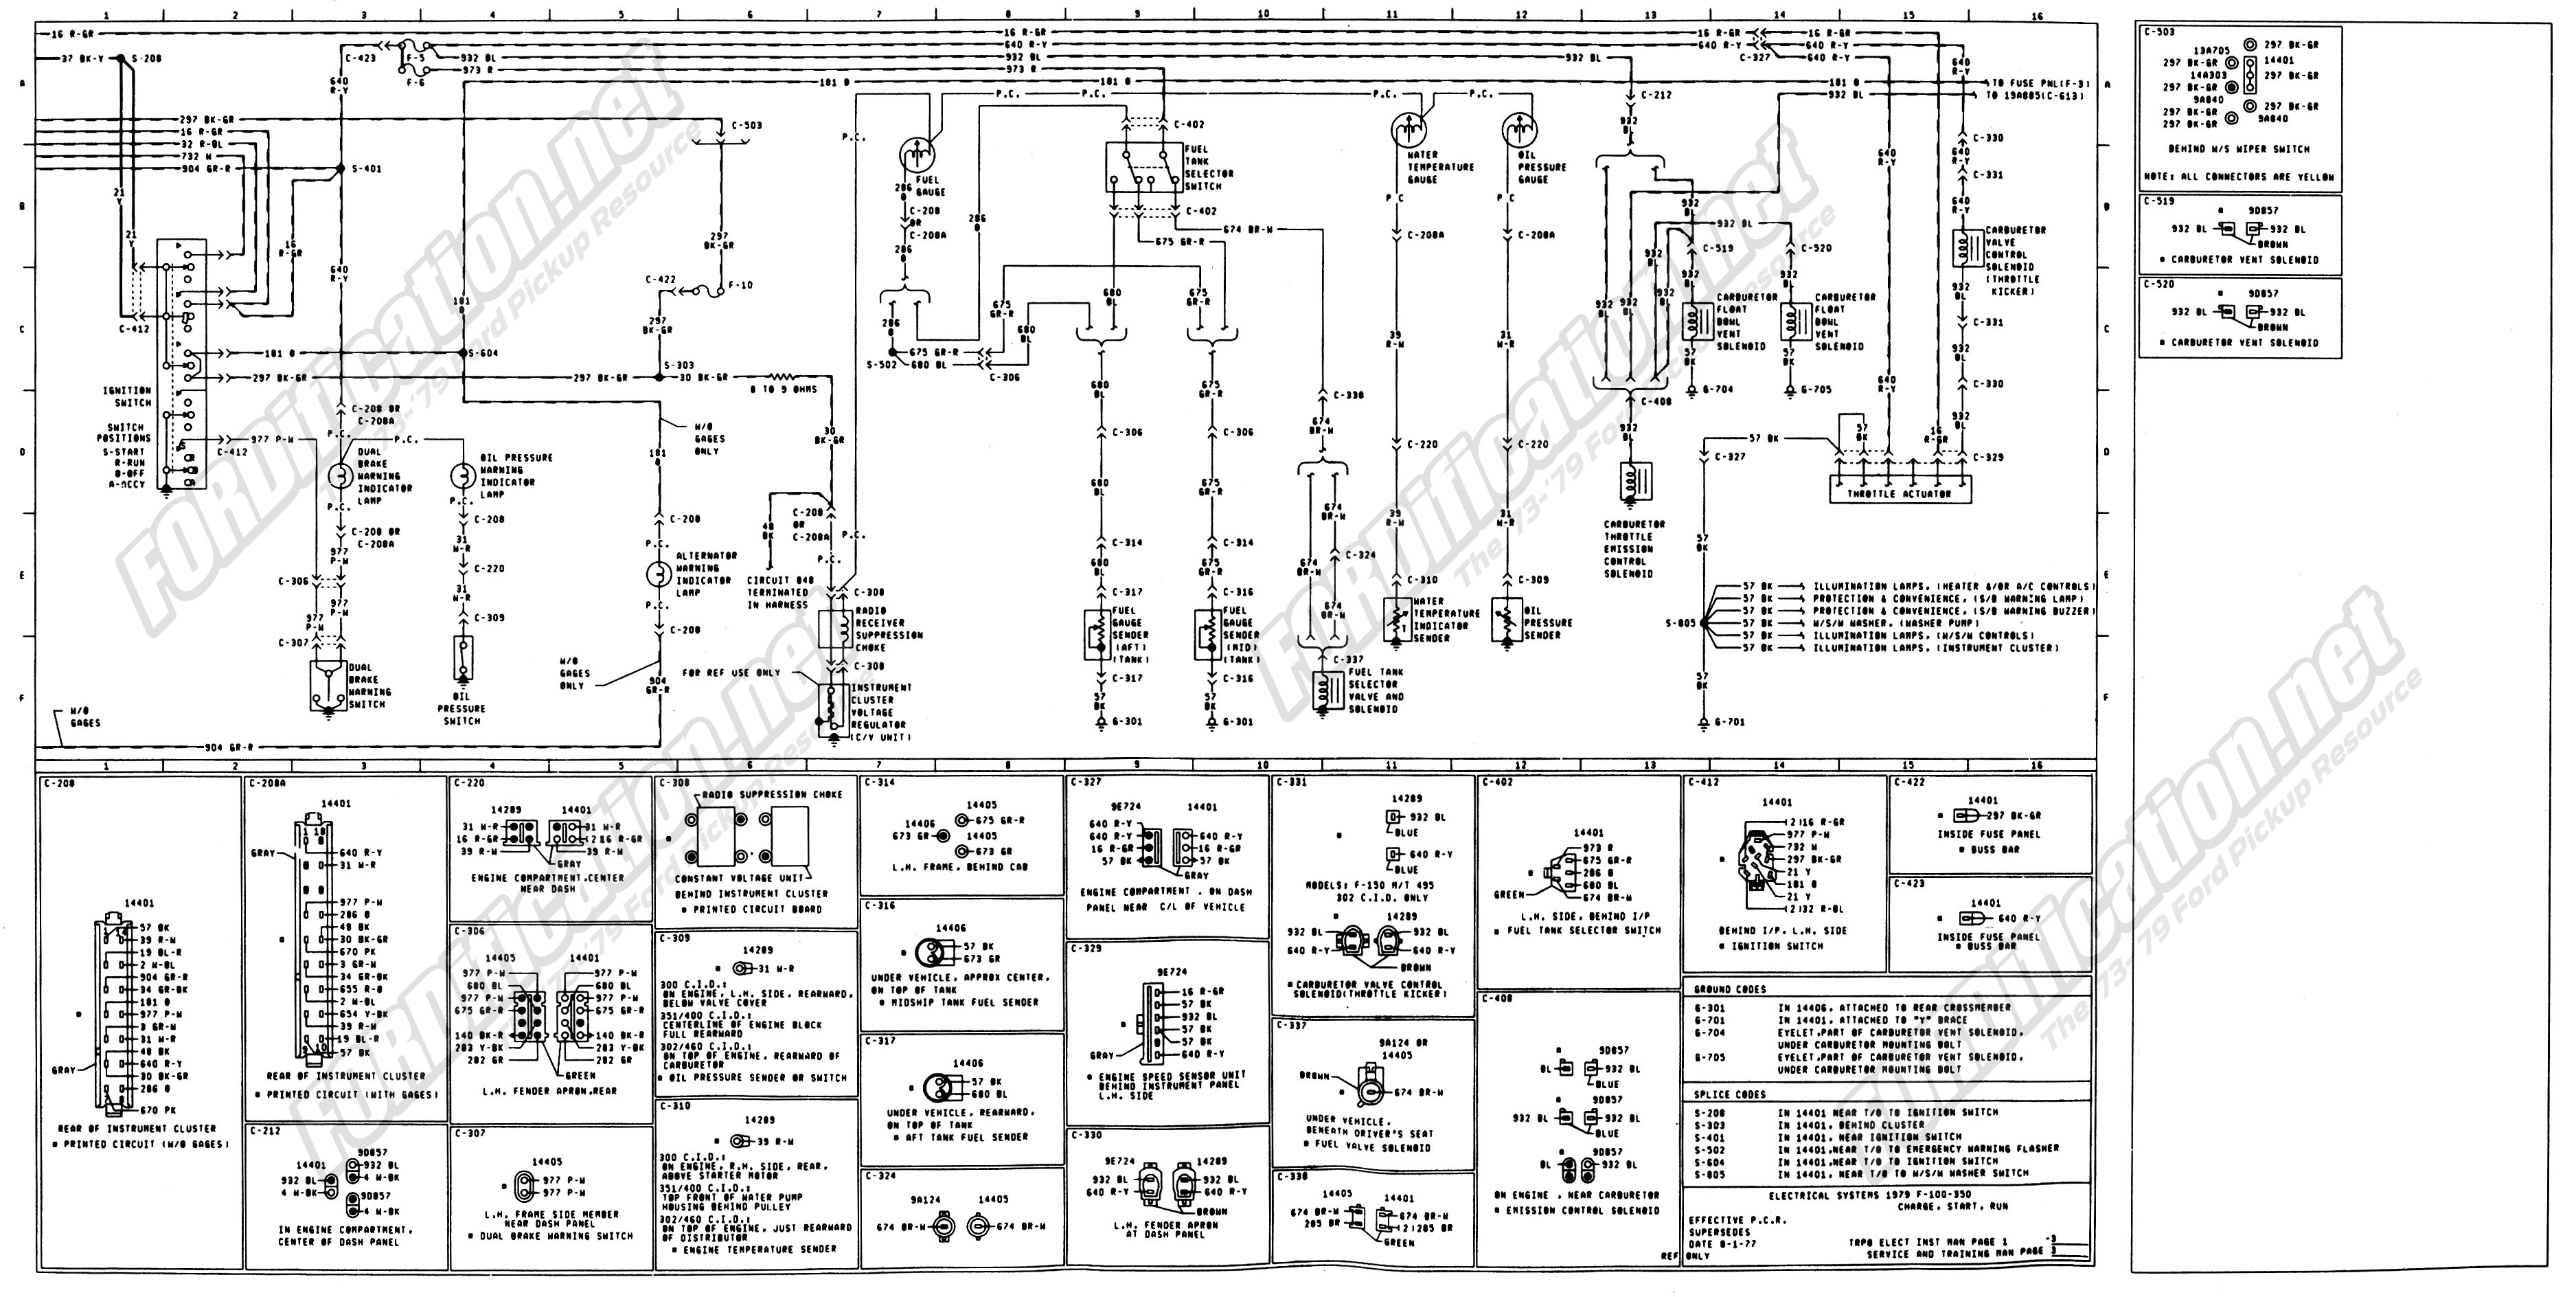 Cj2a Wiring Harness Diagram Library. Ford Fuel Gauge Wiring Diagram List Of Schematic Circuit \u2022 Cj2a. Wiring. Cj2a Wiring Harness Diagram At Scoala.co